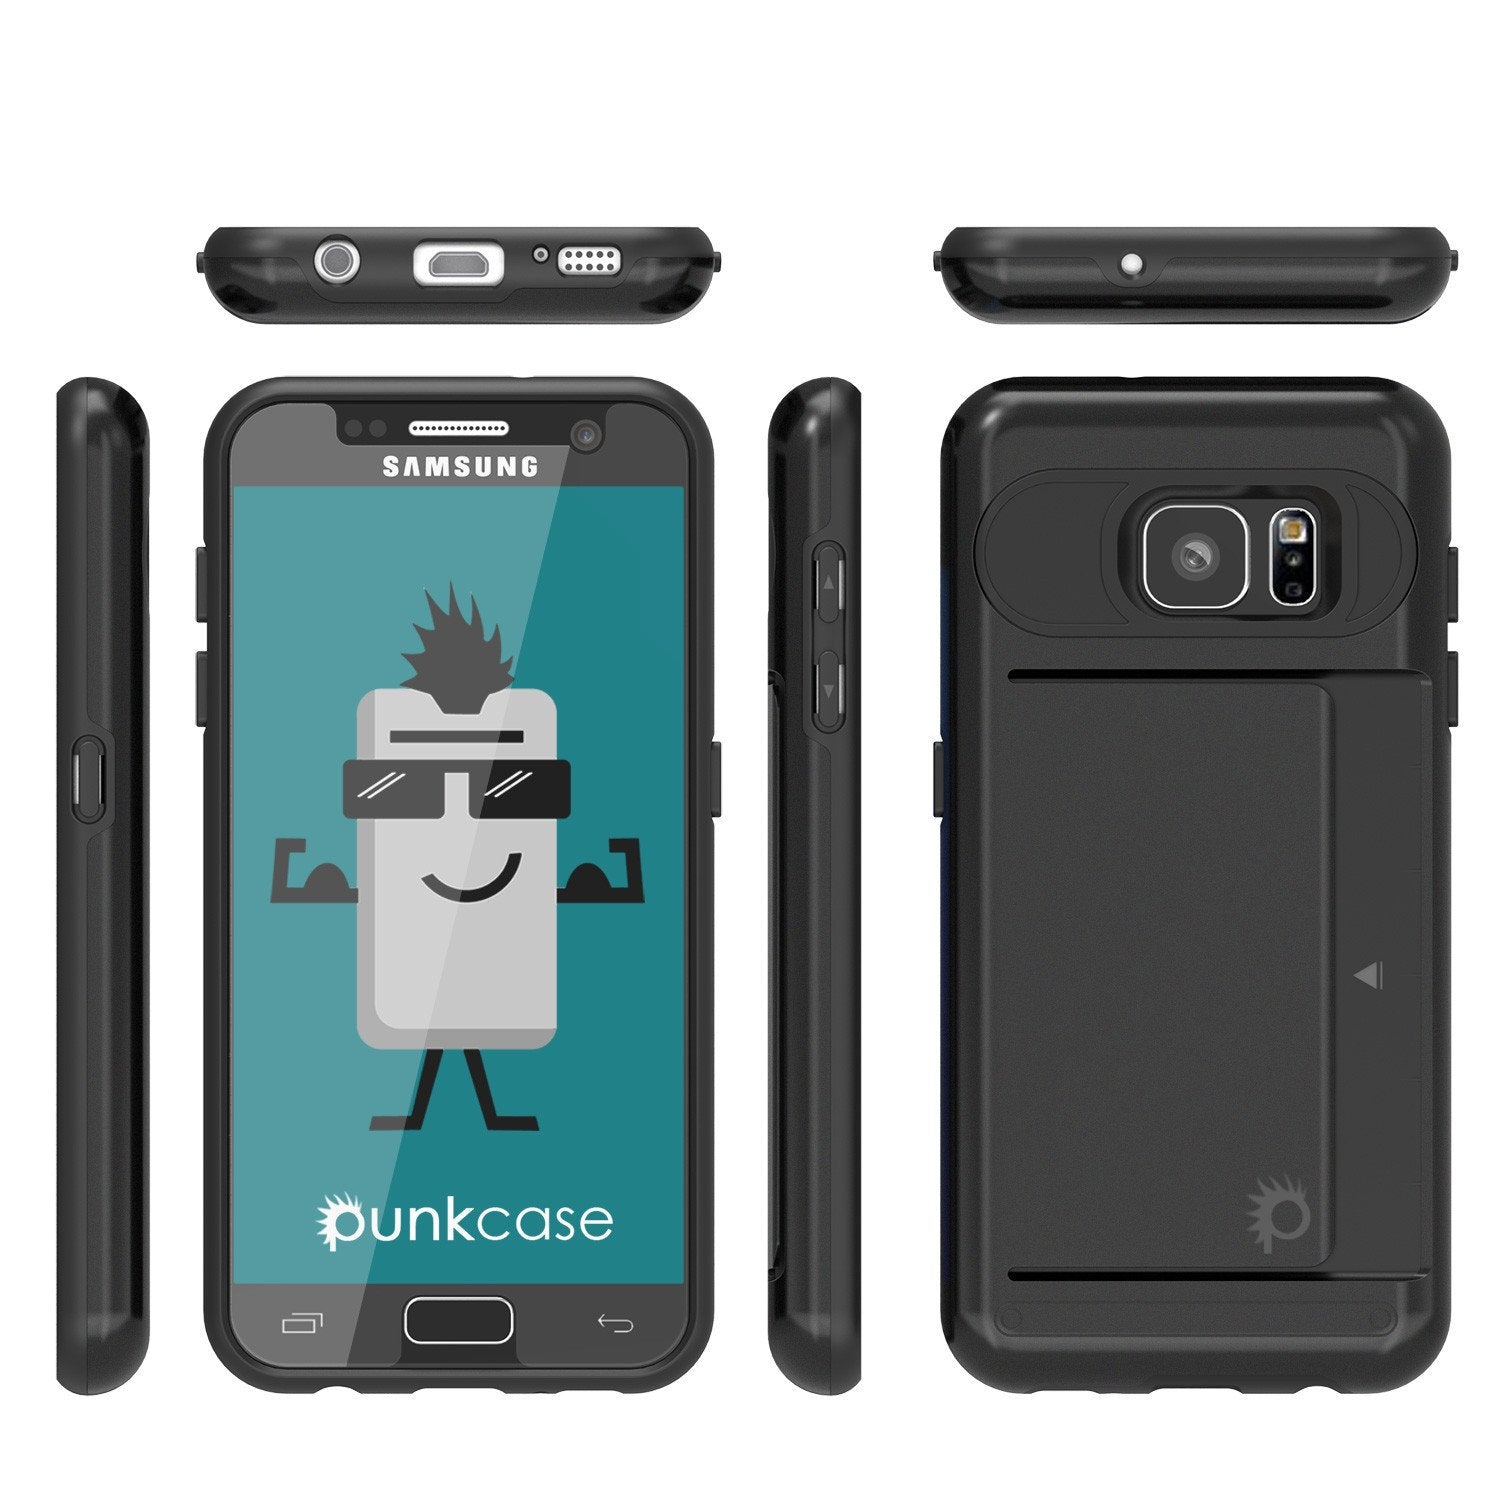 Galaxy S7 EDGE Case PunkCase CLUTCH Black Series Slim Armor Soft Cover Case w/ Screen Protector